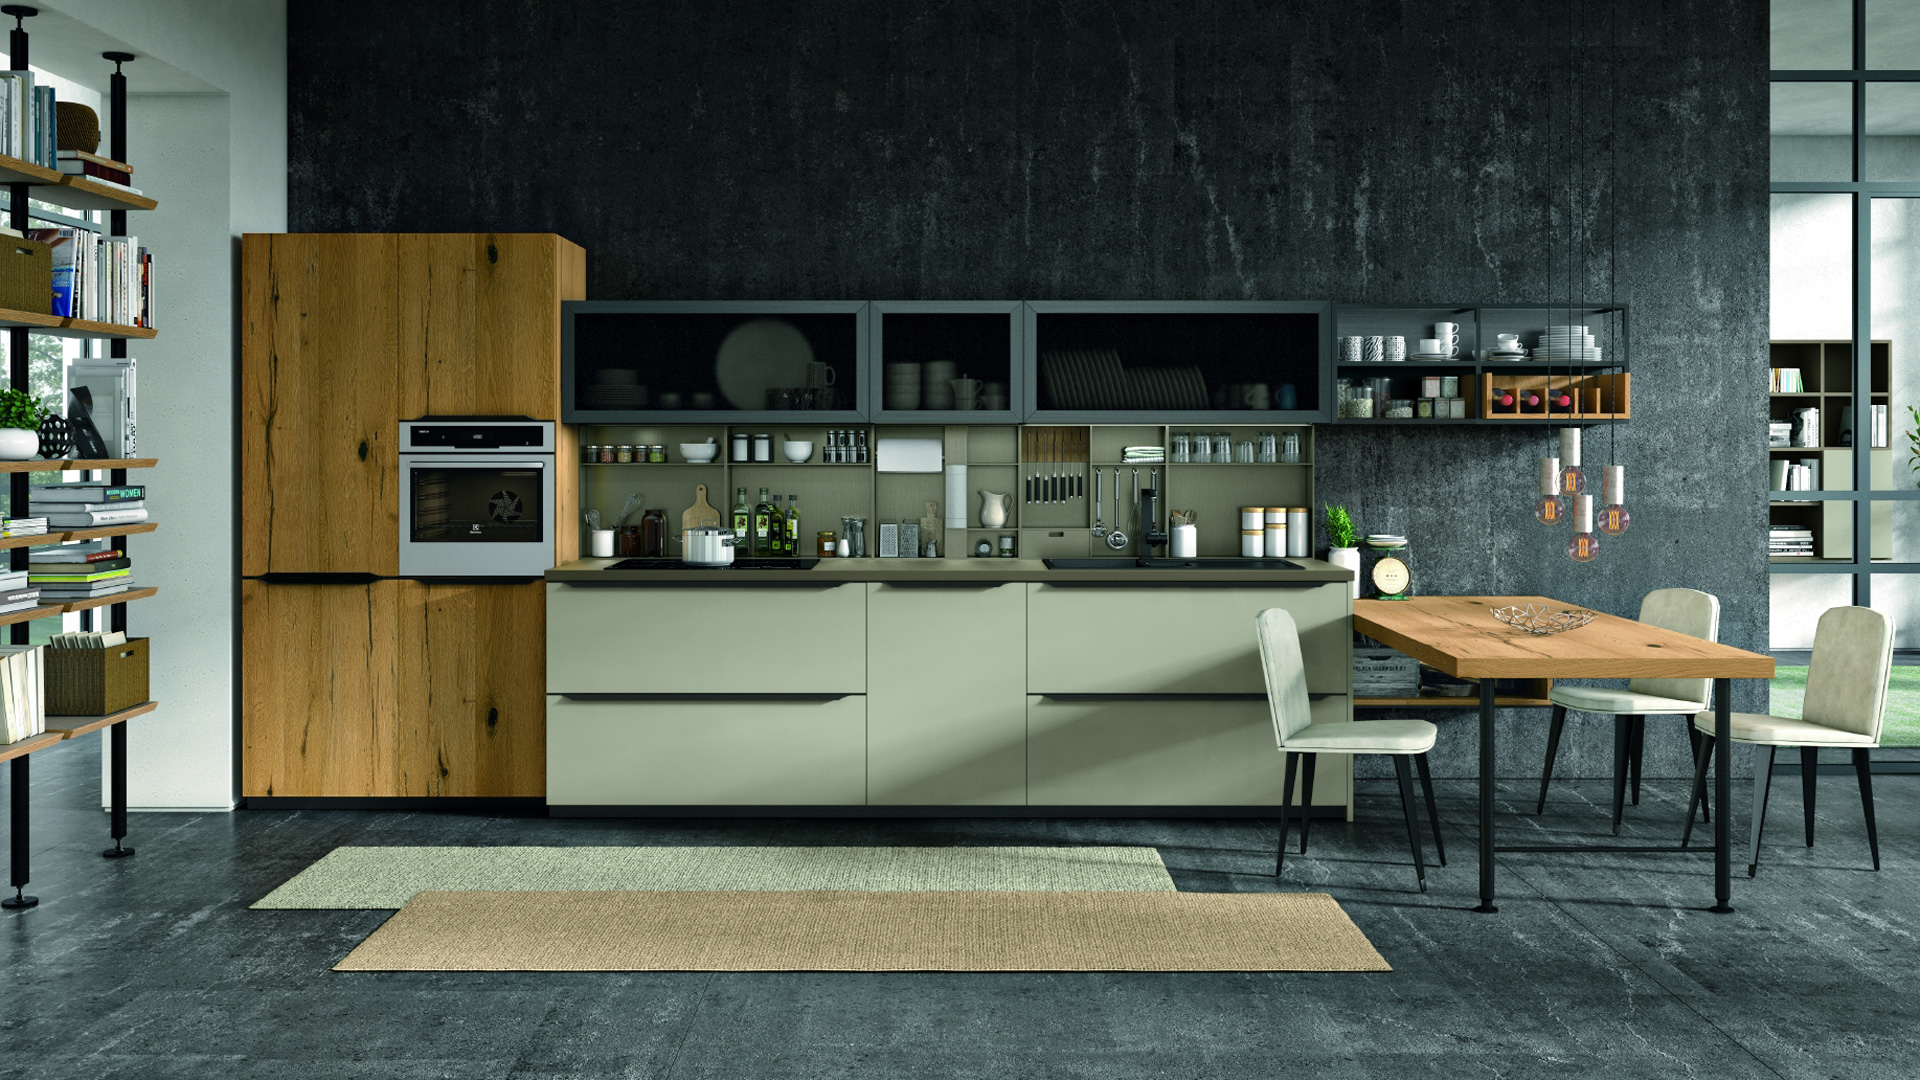 Lube cucine moderne oltre shop online su grancasa for Cucine shop on line